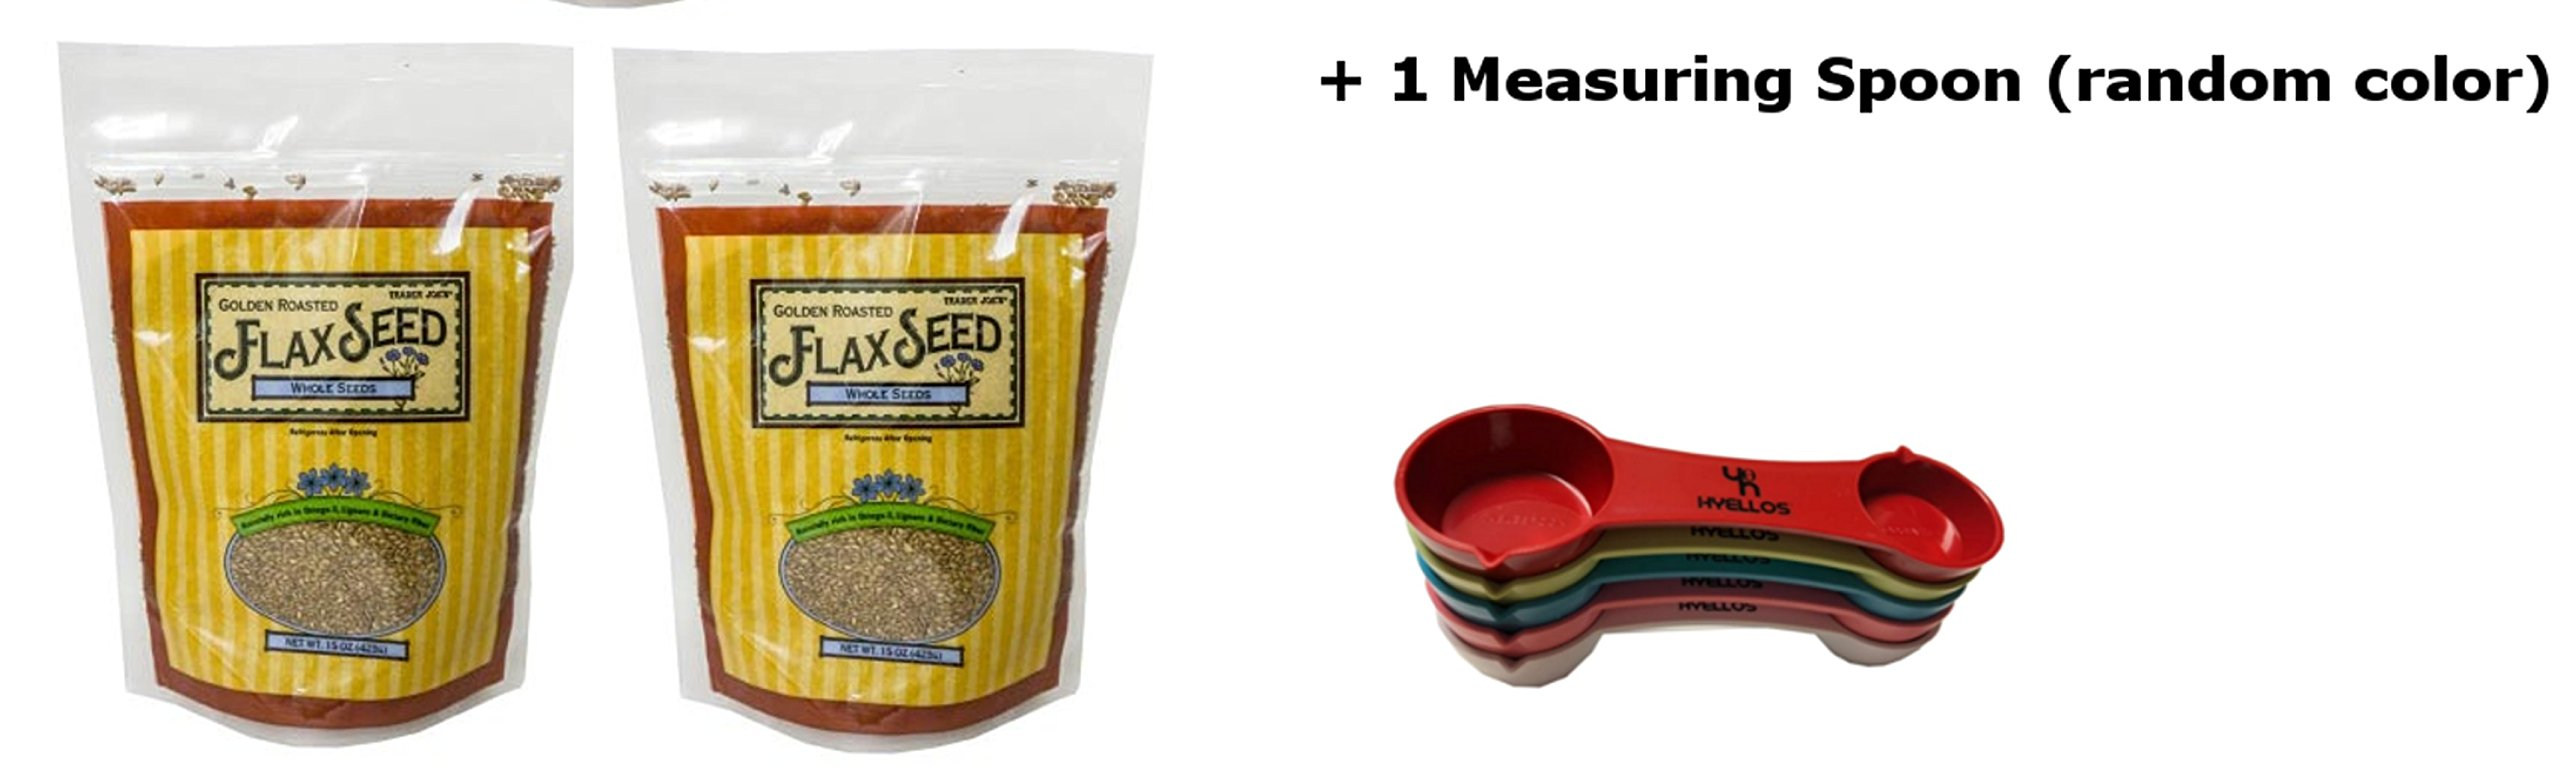 2 pack Trader Joe's Golden Roasted Flax Seed and Exclusive Hyellos Multi-Use Measuring Spoon